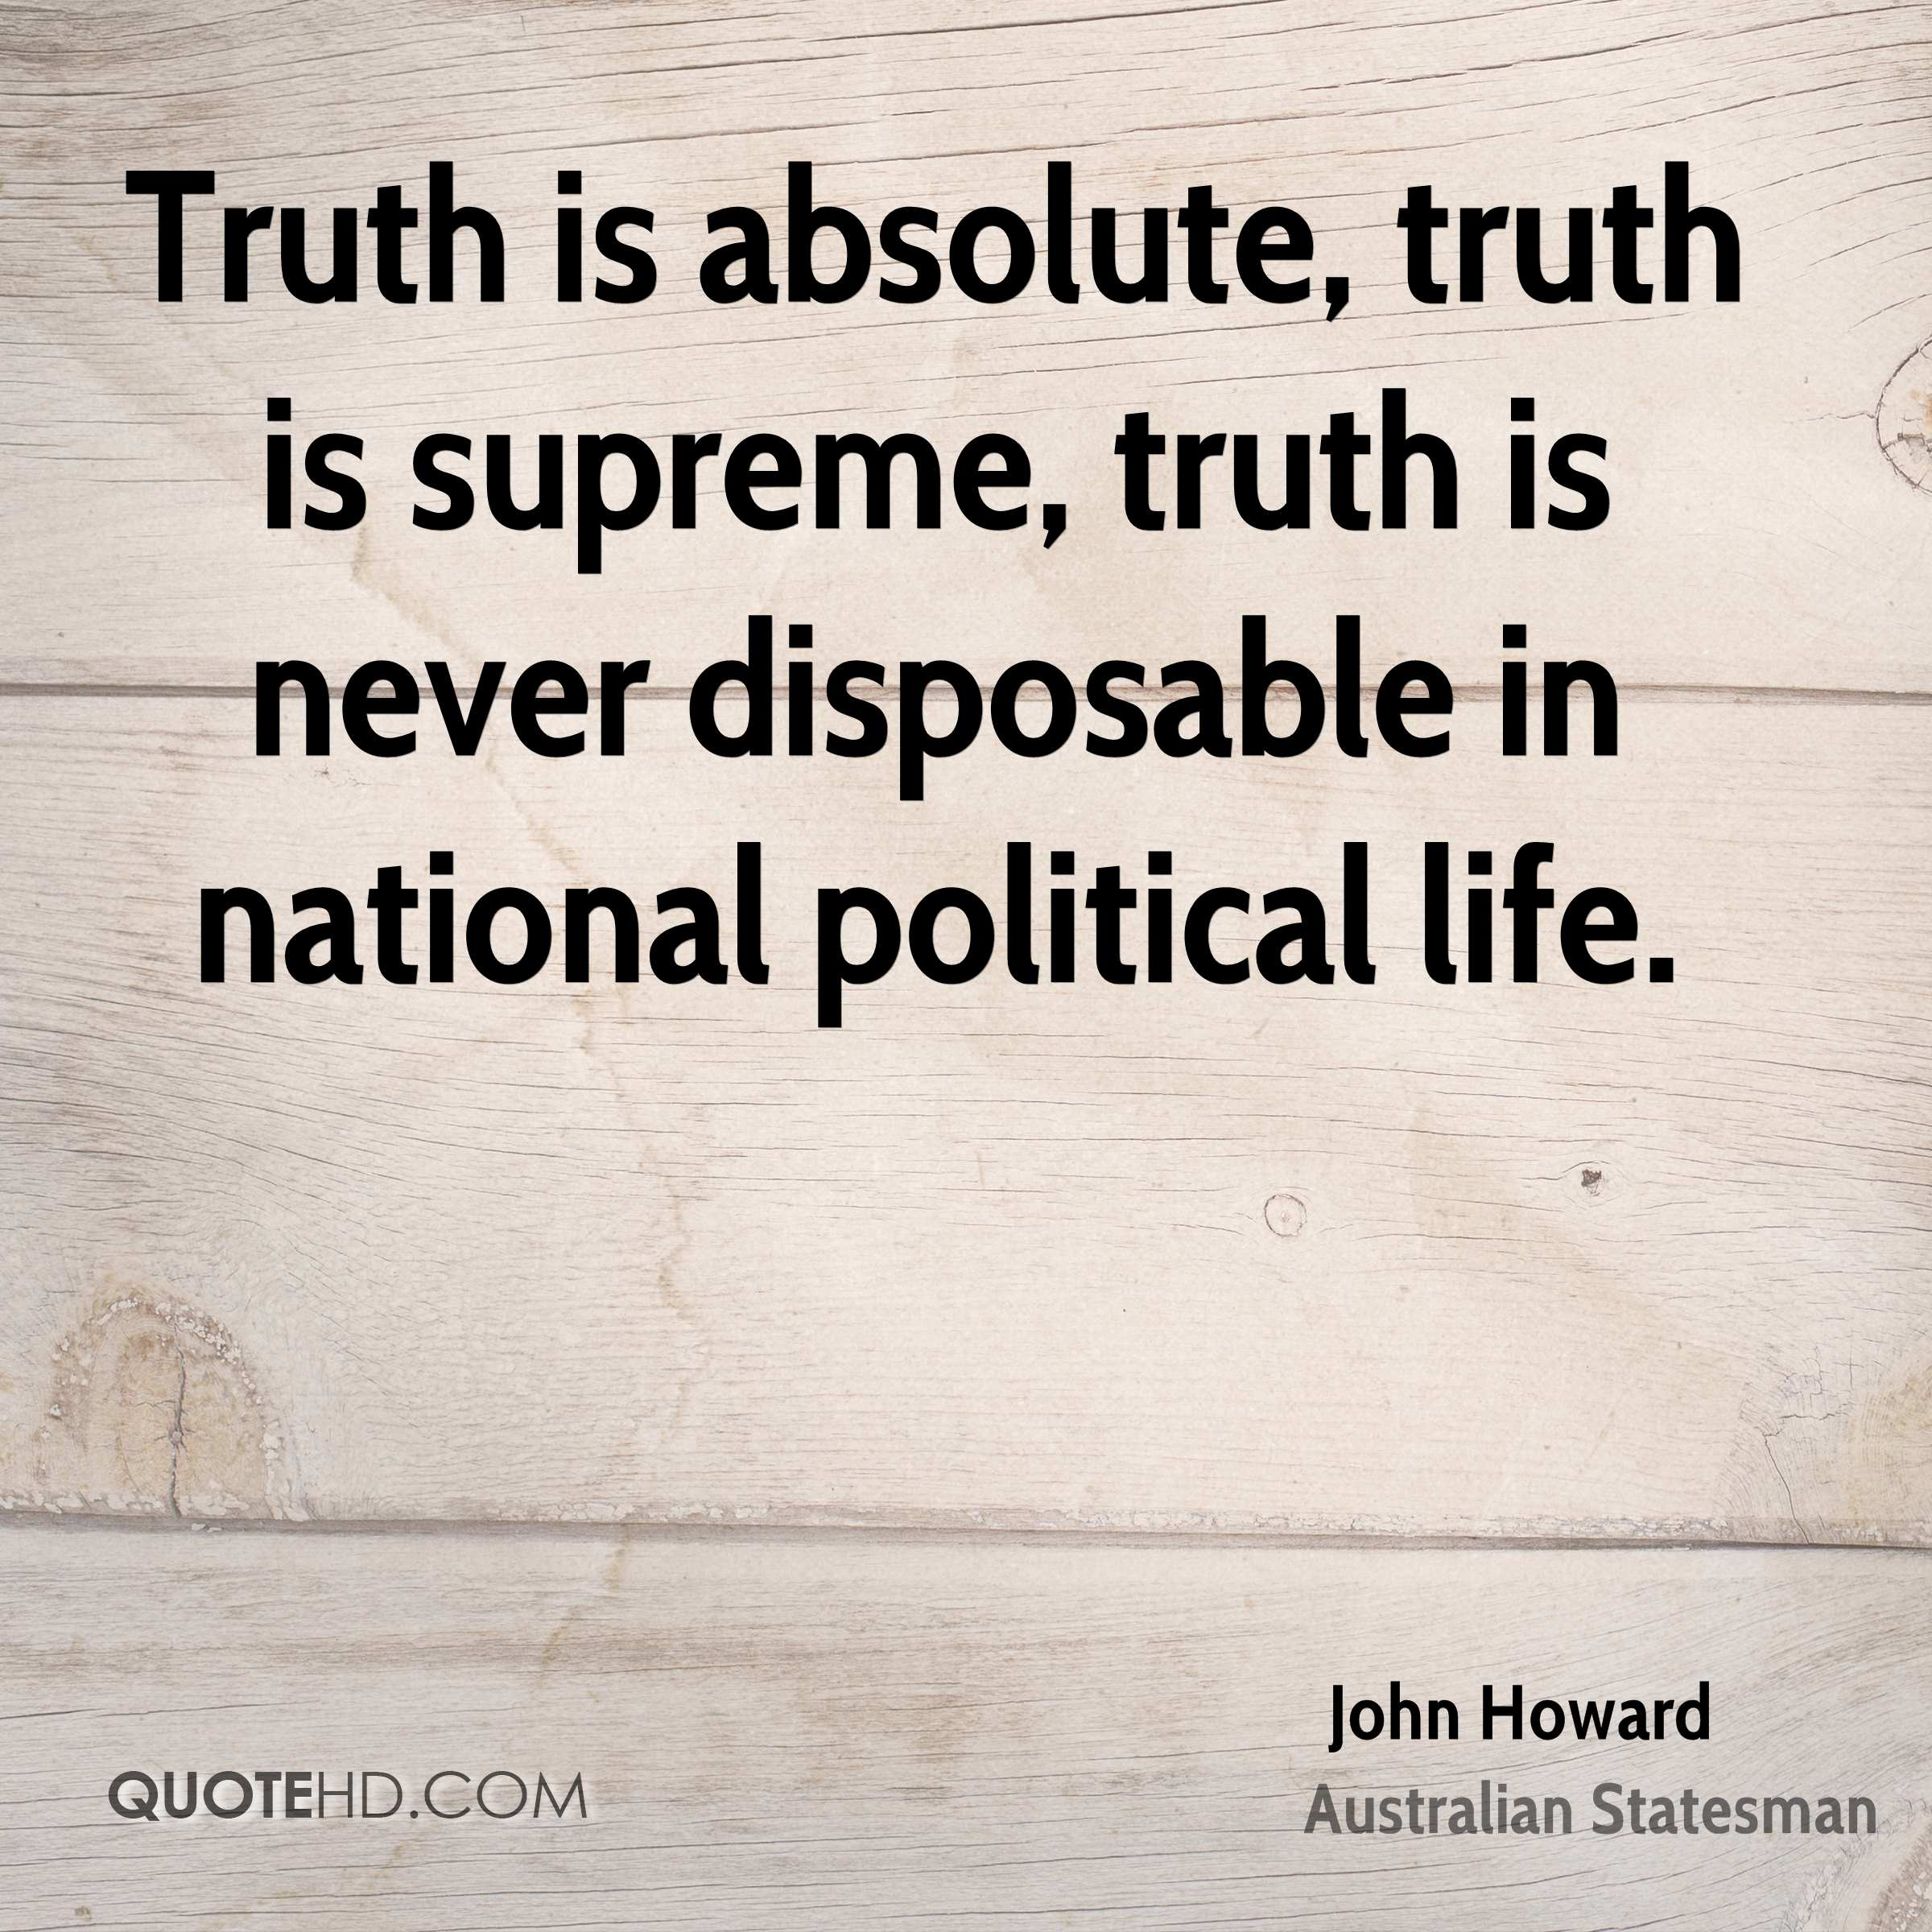 Truth is absolute, truth is supreme, truth is never disposable in national political life.